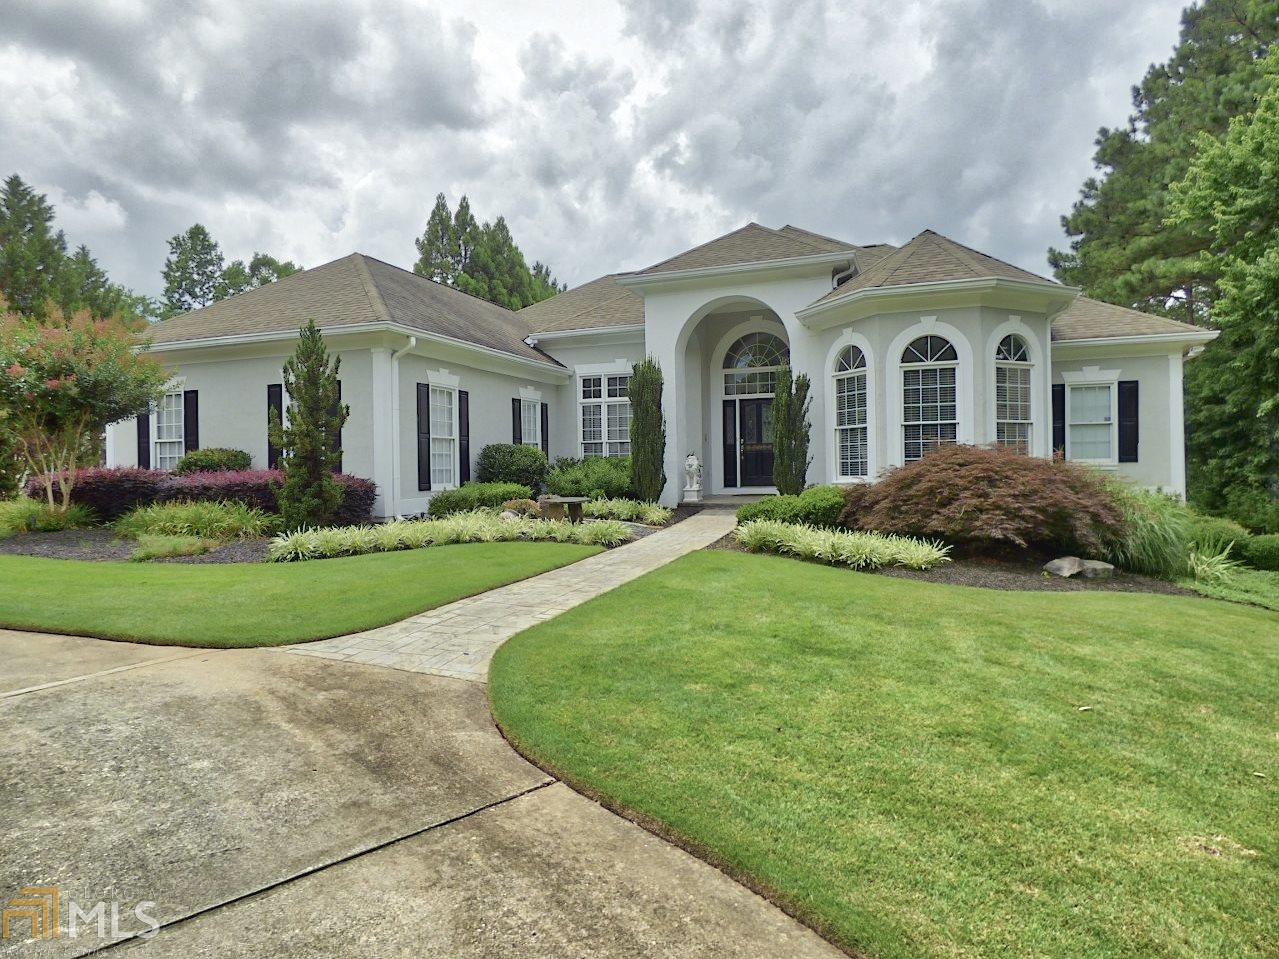 406 Winged Foot Dr